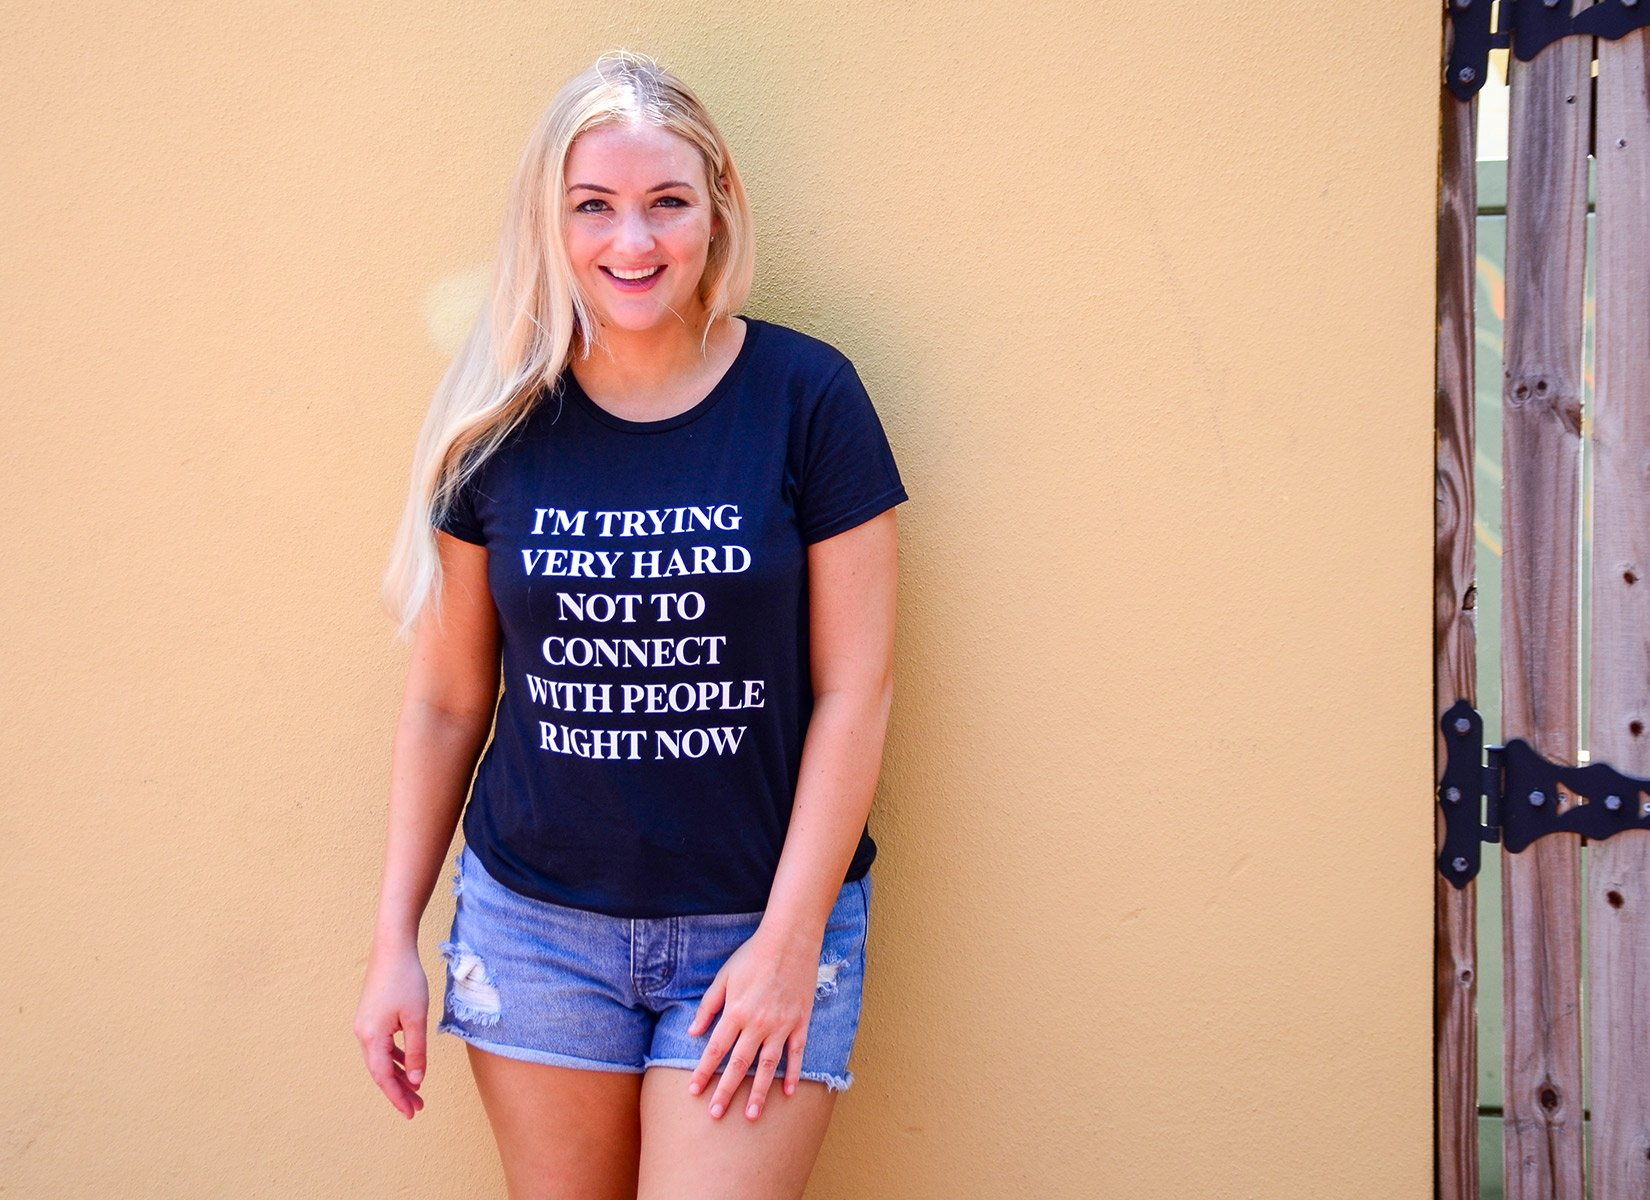 I'm Trying Very Hard Not To Connect With People Right Now on Womens T-Shirt